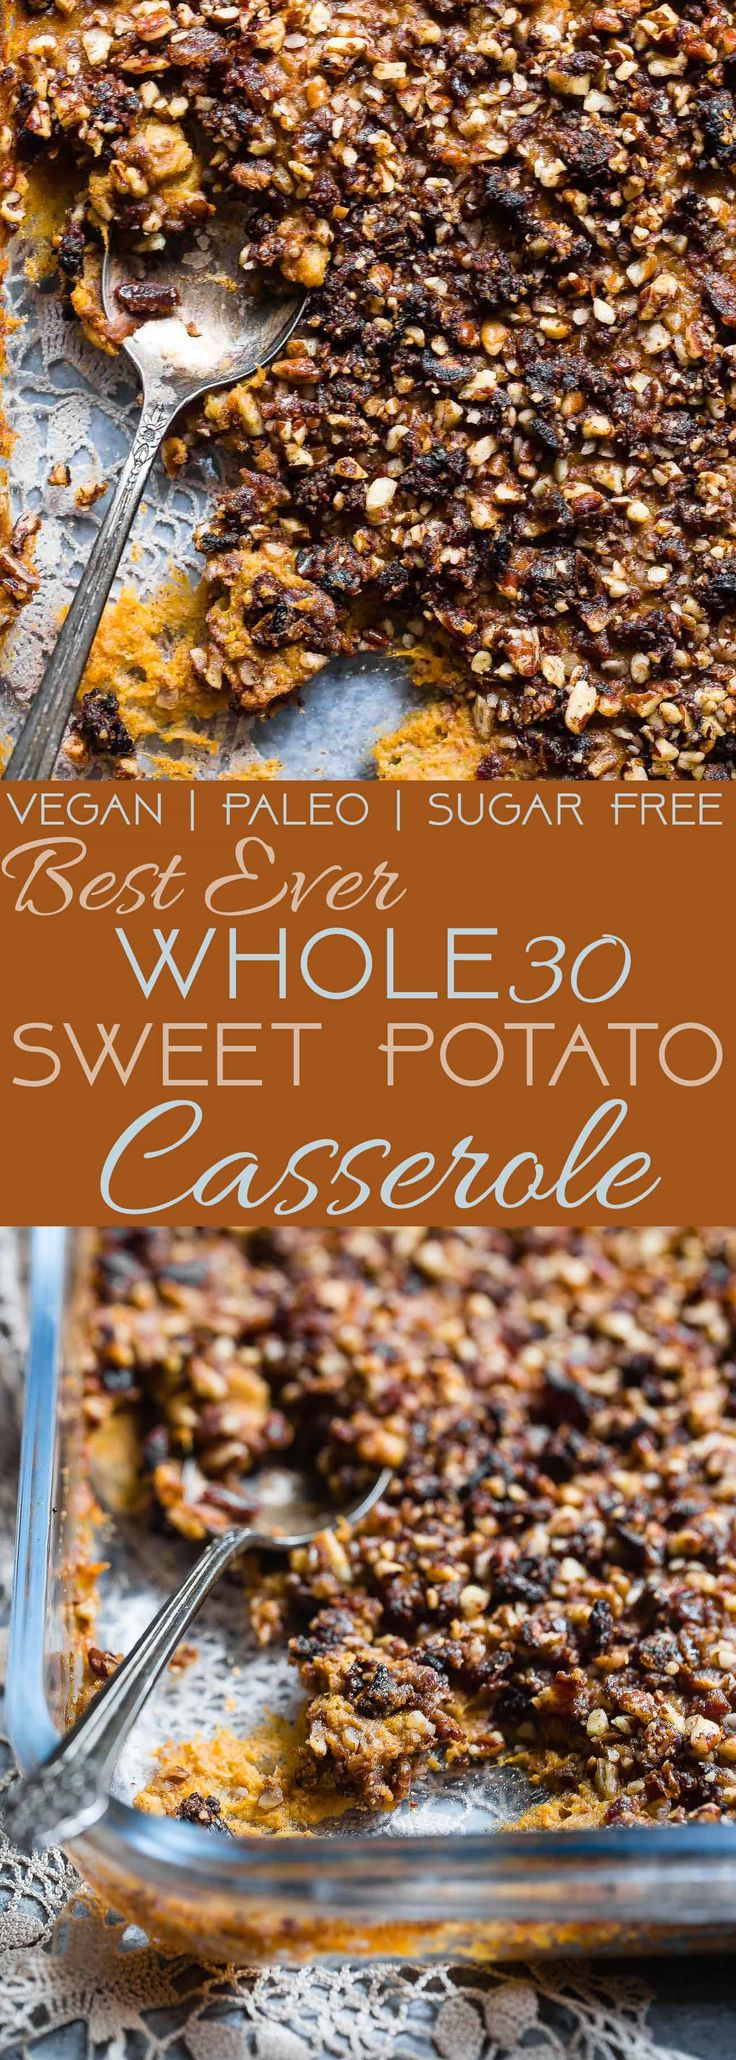 Paleo Easy Healthy Sweet Potato Casserole with Pecan Topping - the best side dish for Thanksgiving! No one will believe it's vegan friendly, whole30 compliant and gluten/grain/dairy/sugar AND egg free! | Foodfaithfitness.com | @FoodFaithFit | Vegan sweet potato casserole. whole30 sweet potato casserole.